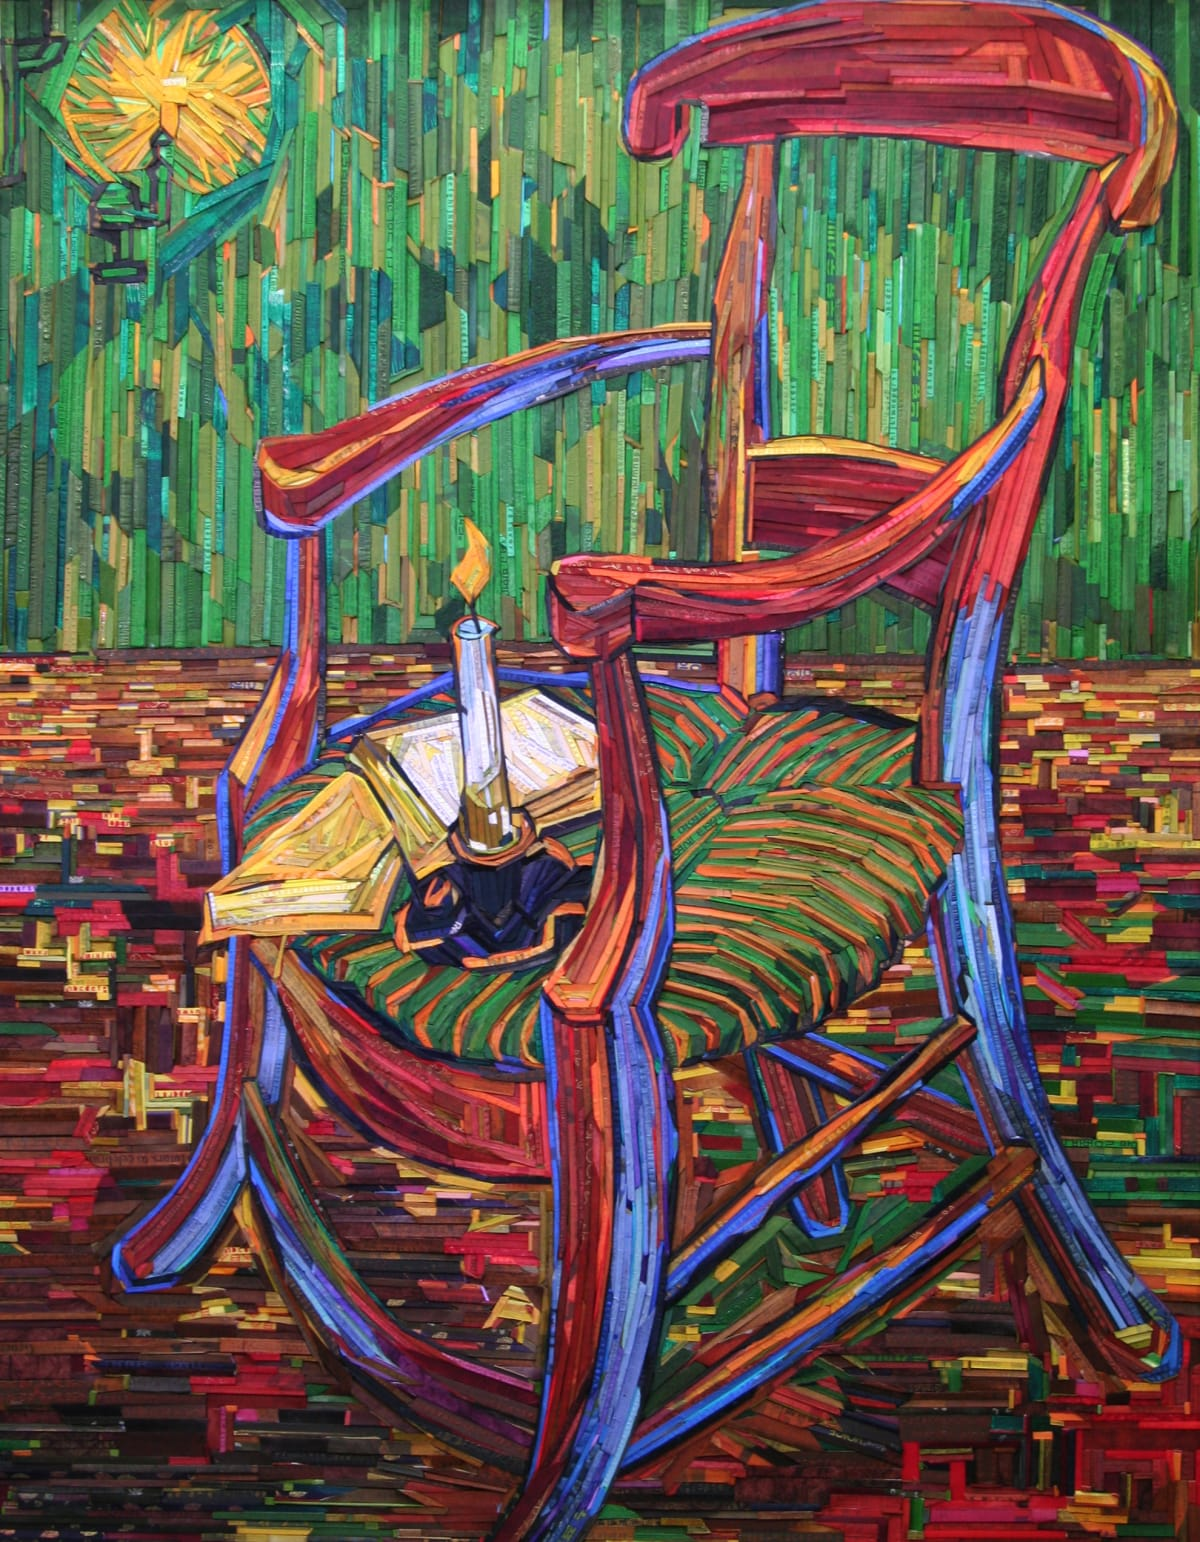 Kyu-Hak Lee, Monument- Gauguin's Chair #5, 2017